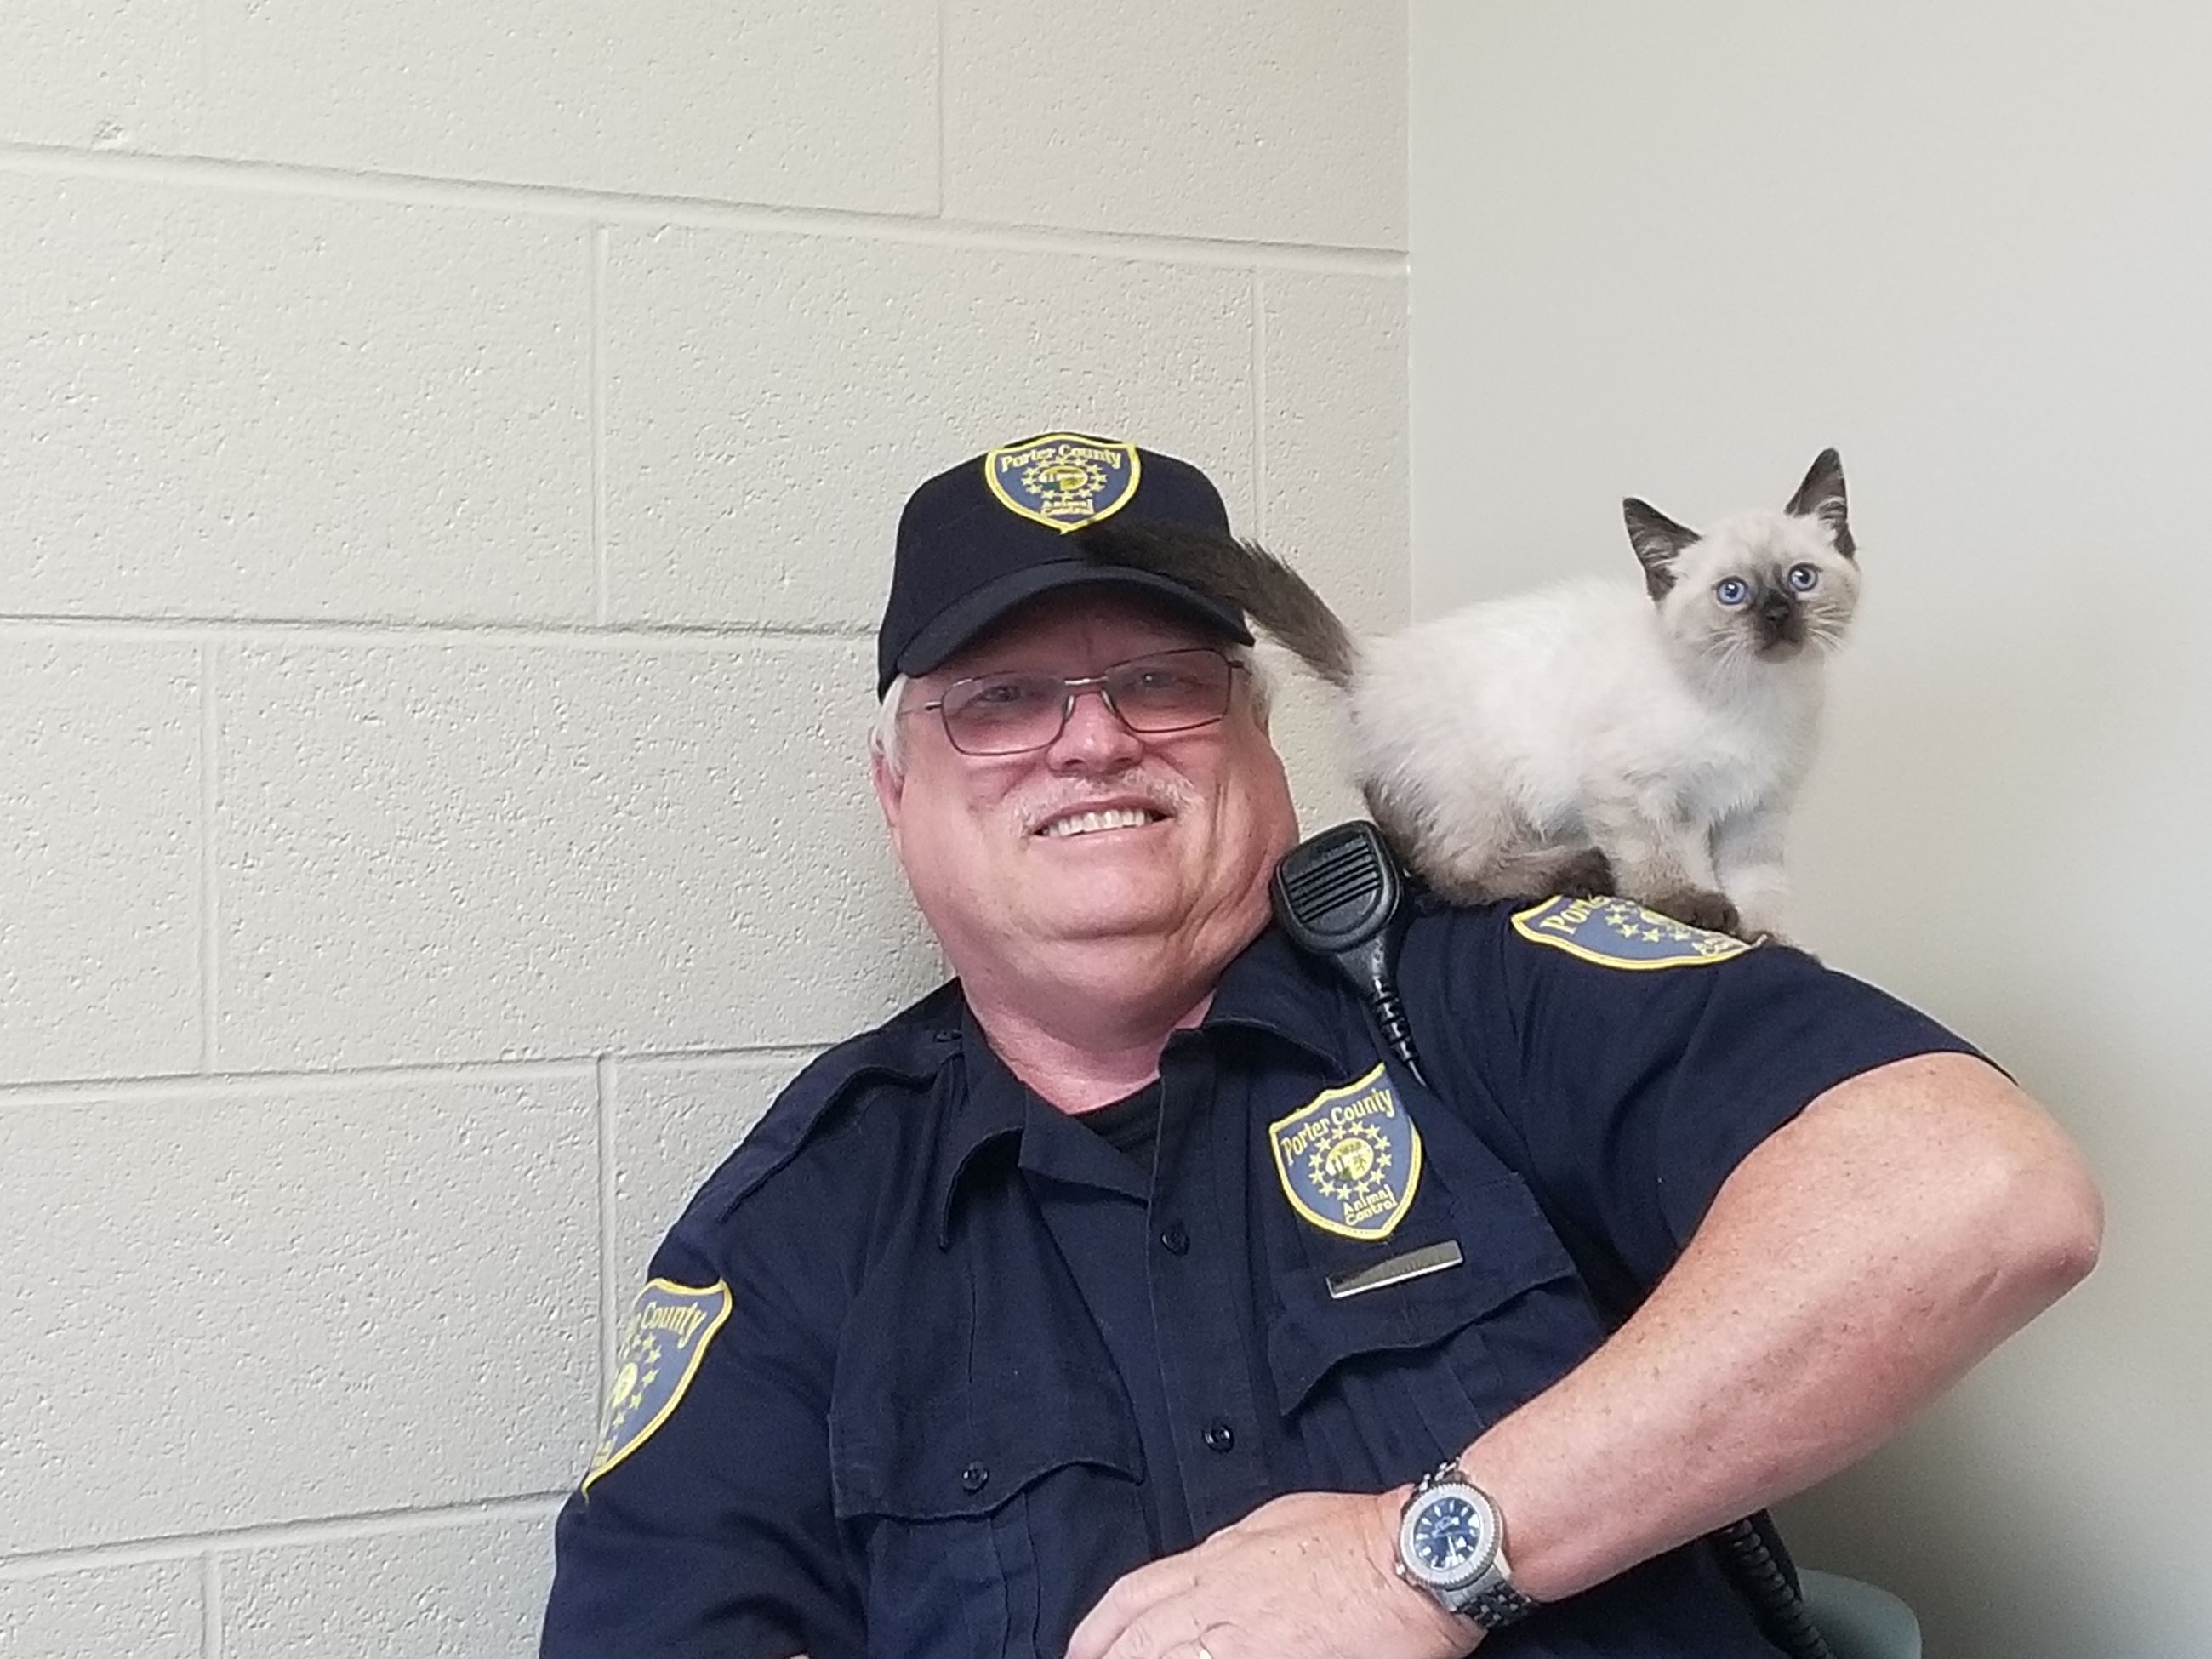 Photo of animal control officer with kitten on his shoulder